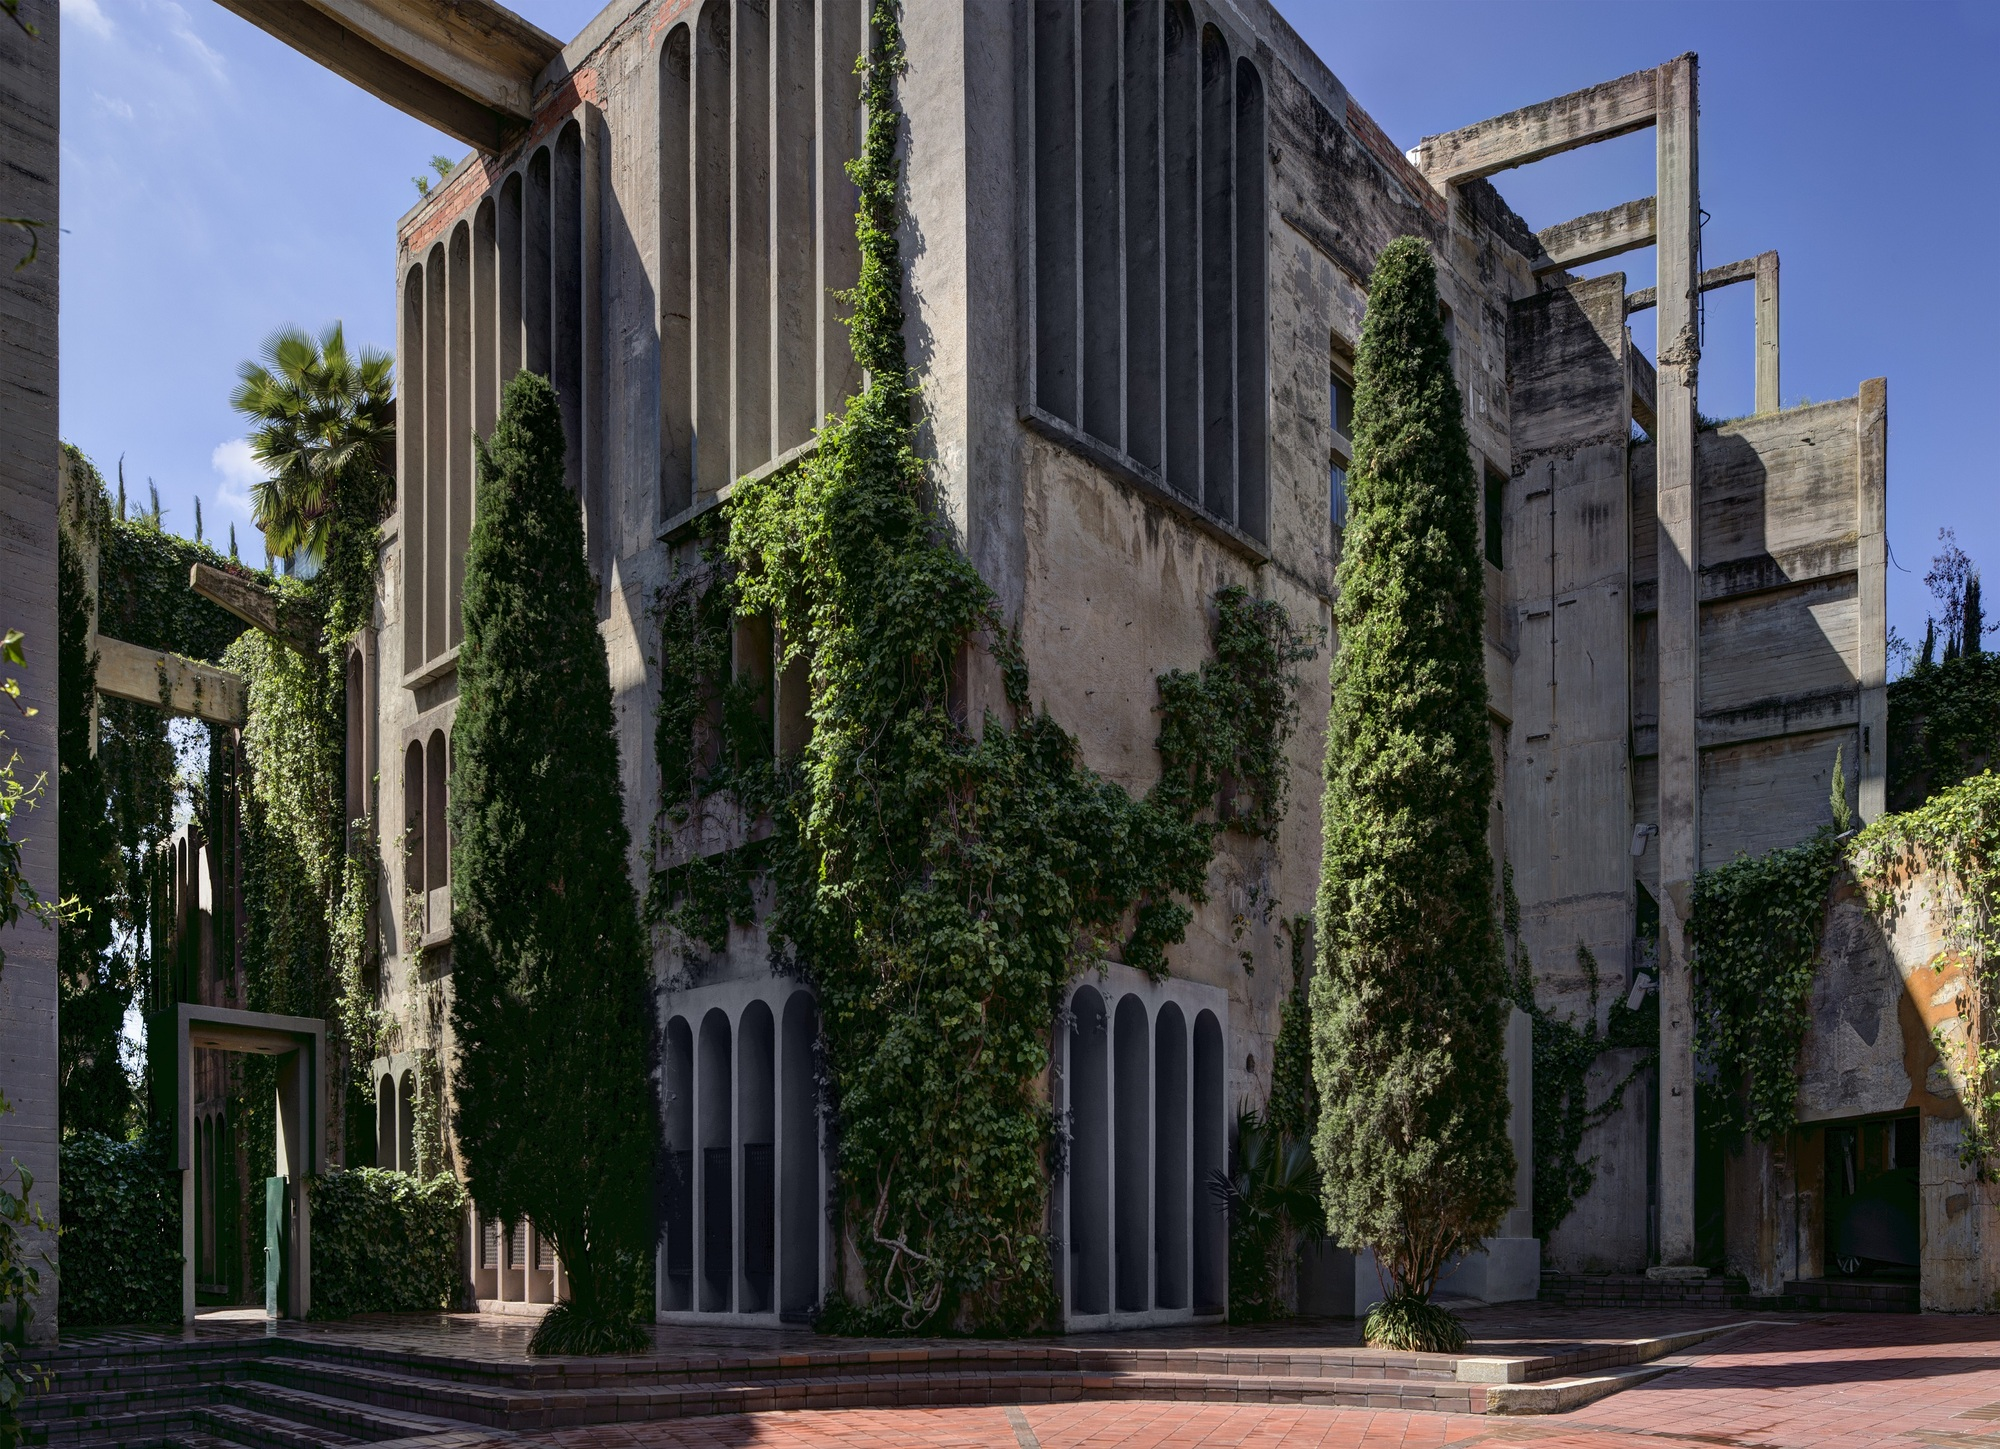 gallery of ricardo bofill why are historical towns more beautiful than modern cities 35. Black Bedroom Furniture Sets. Home Design Ideas